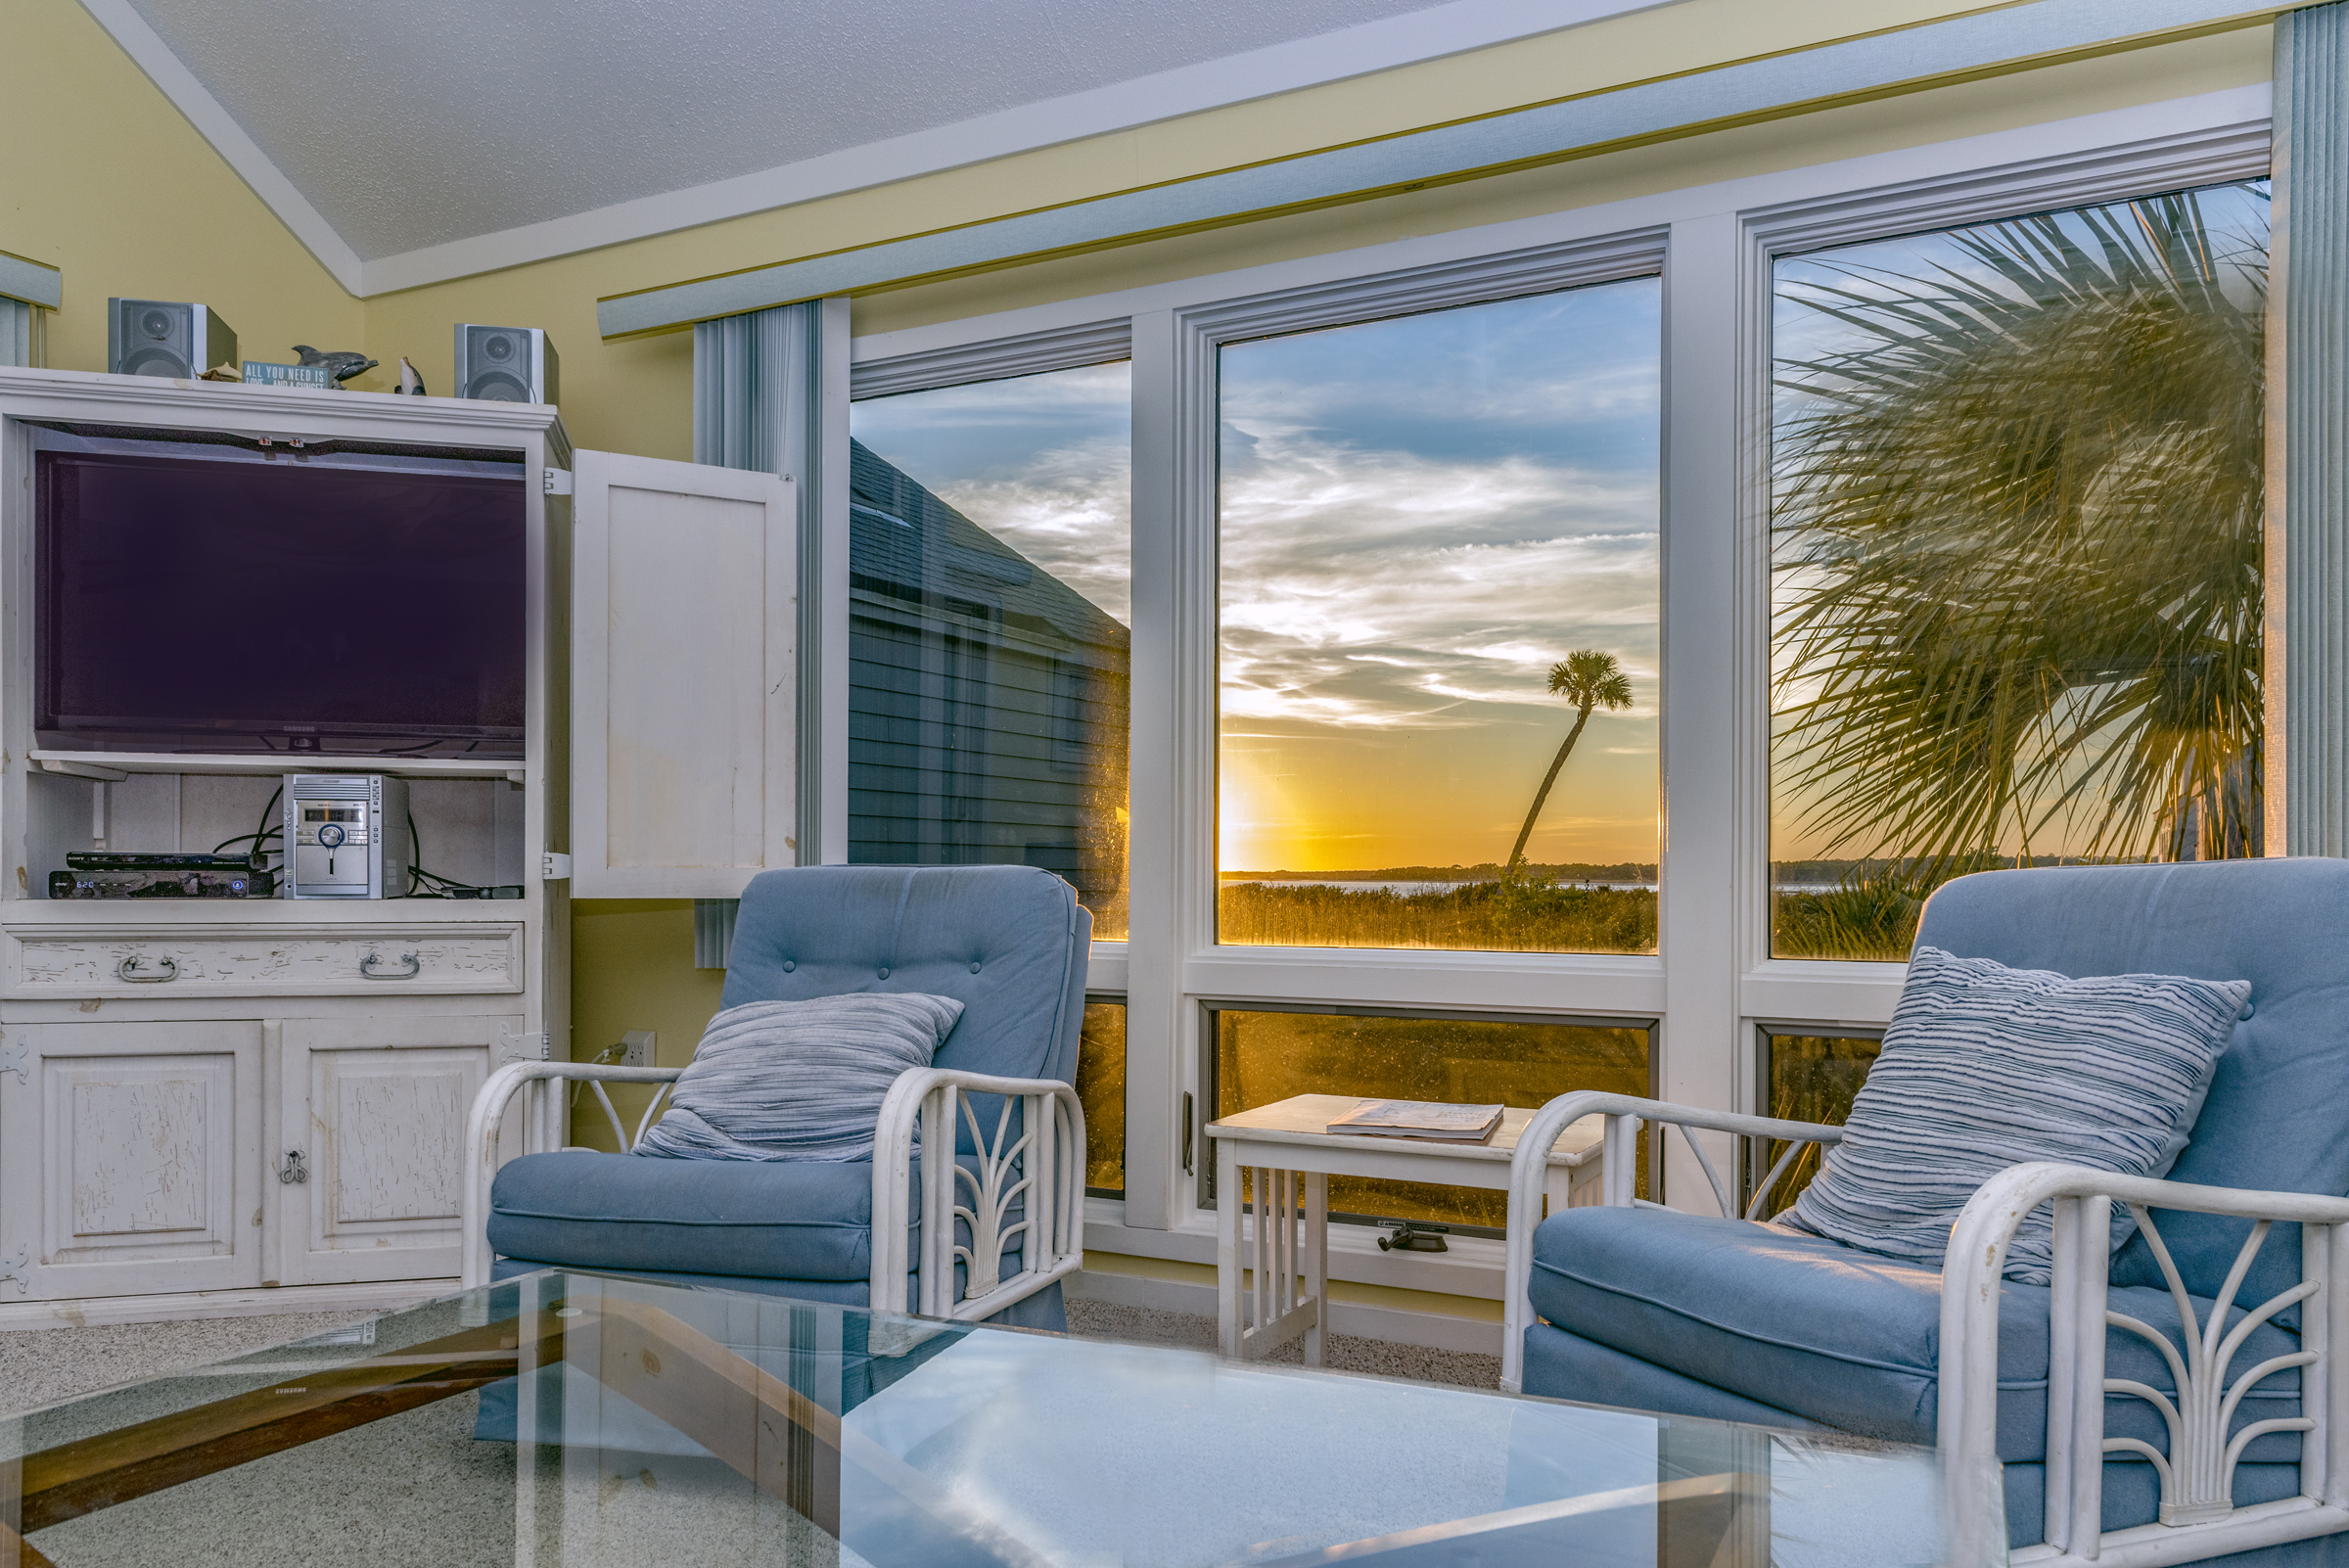 The beauty of Seabrook surrounds you